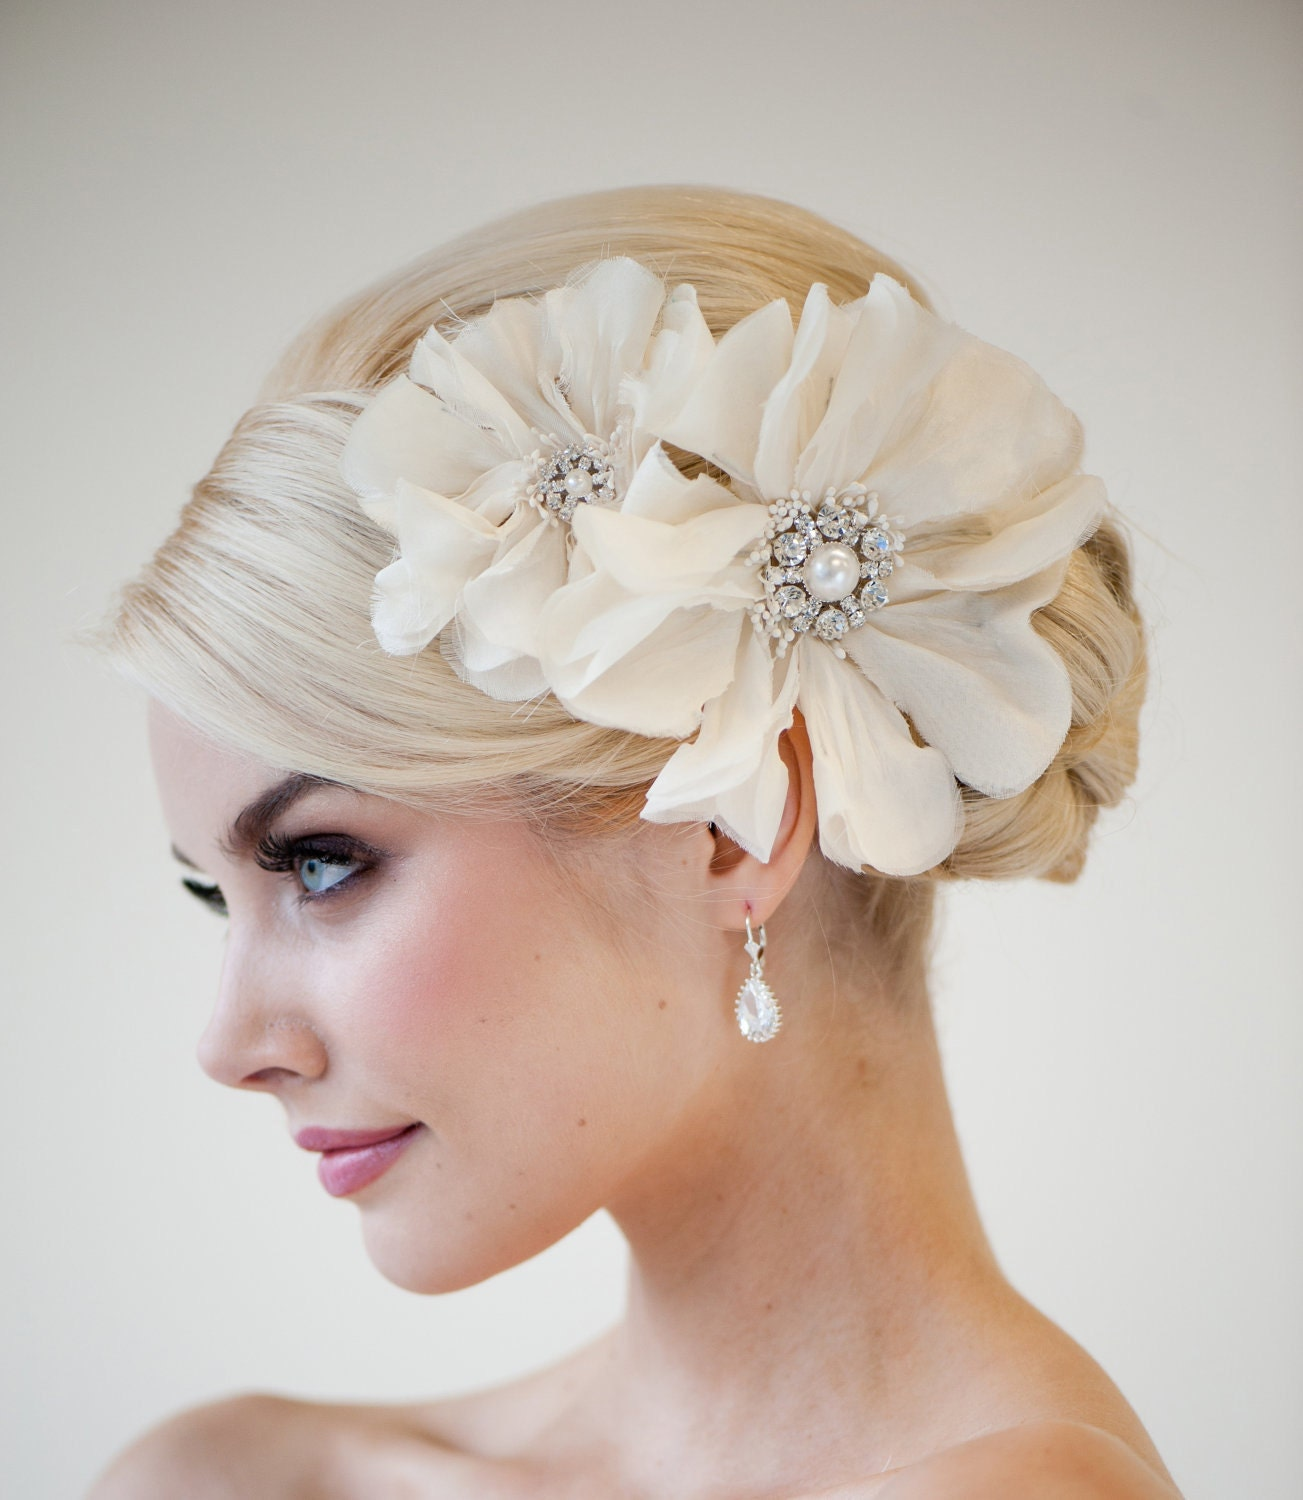 Flower Wedding Headpieces: Bridal Headpiece Bridal Flower Fascinator Wedding Silk